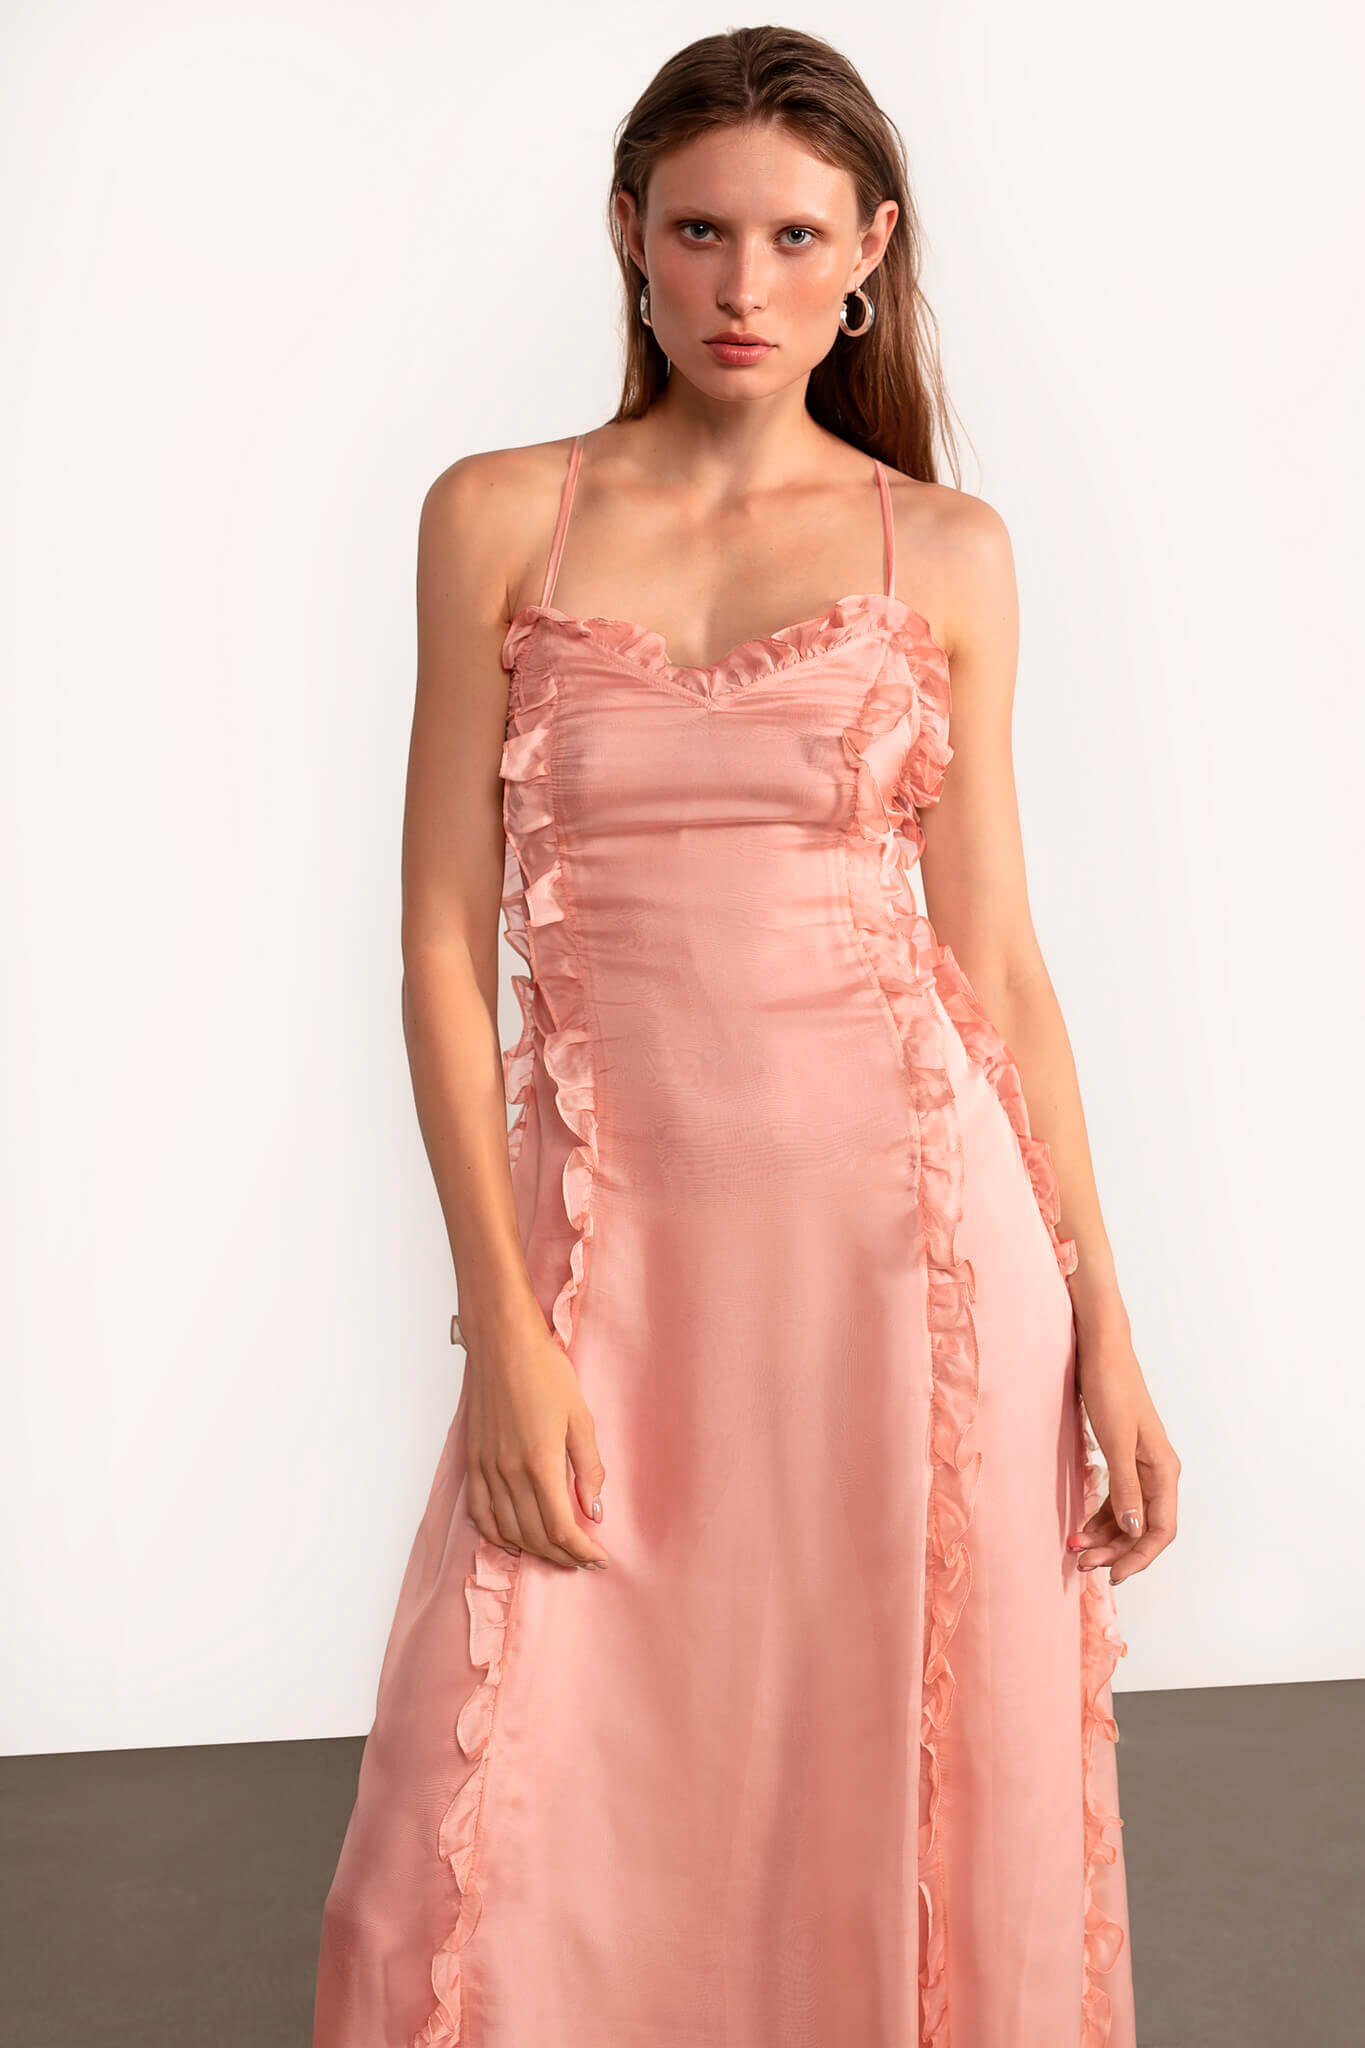 His Heart Skipped The Beat Dress image featured